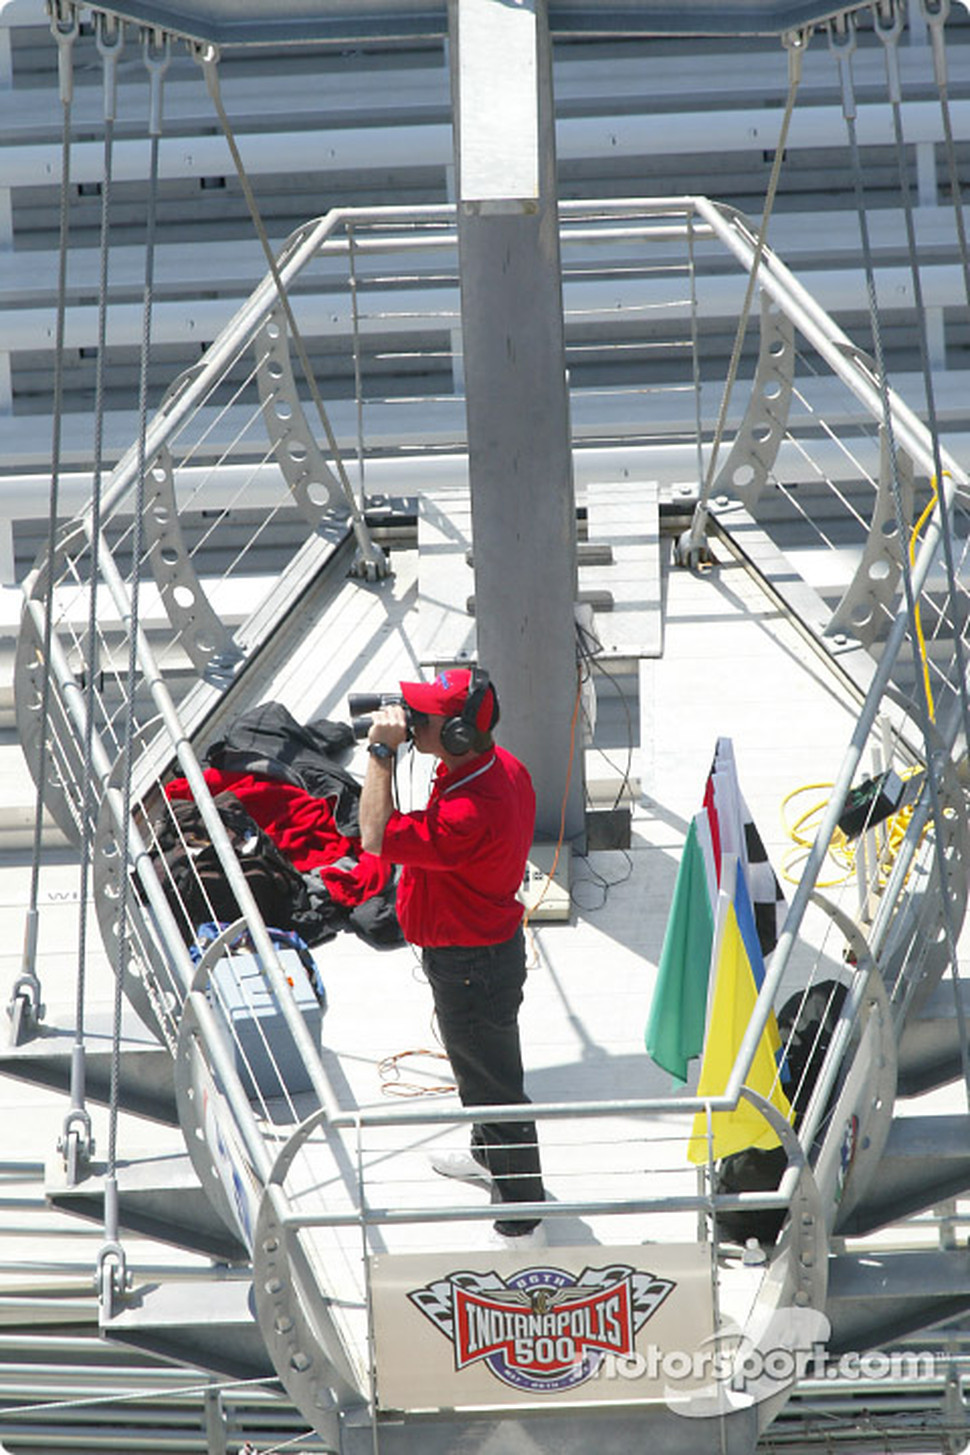 Indianapolis Motor Speedway Flagman Getting Ready For The